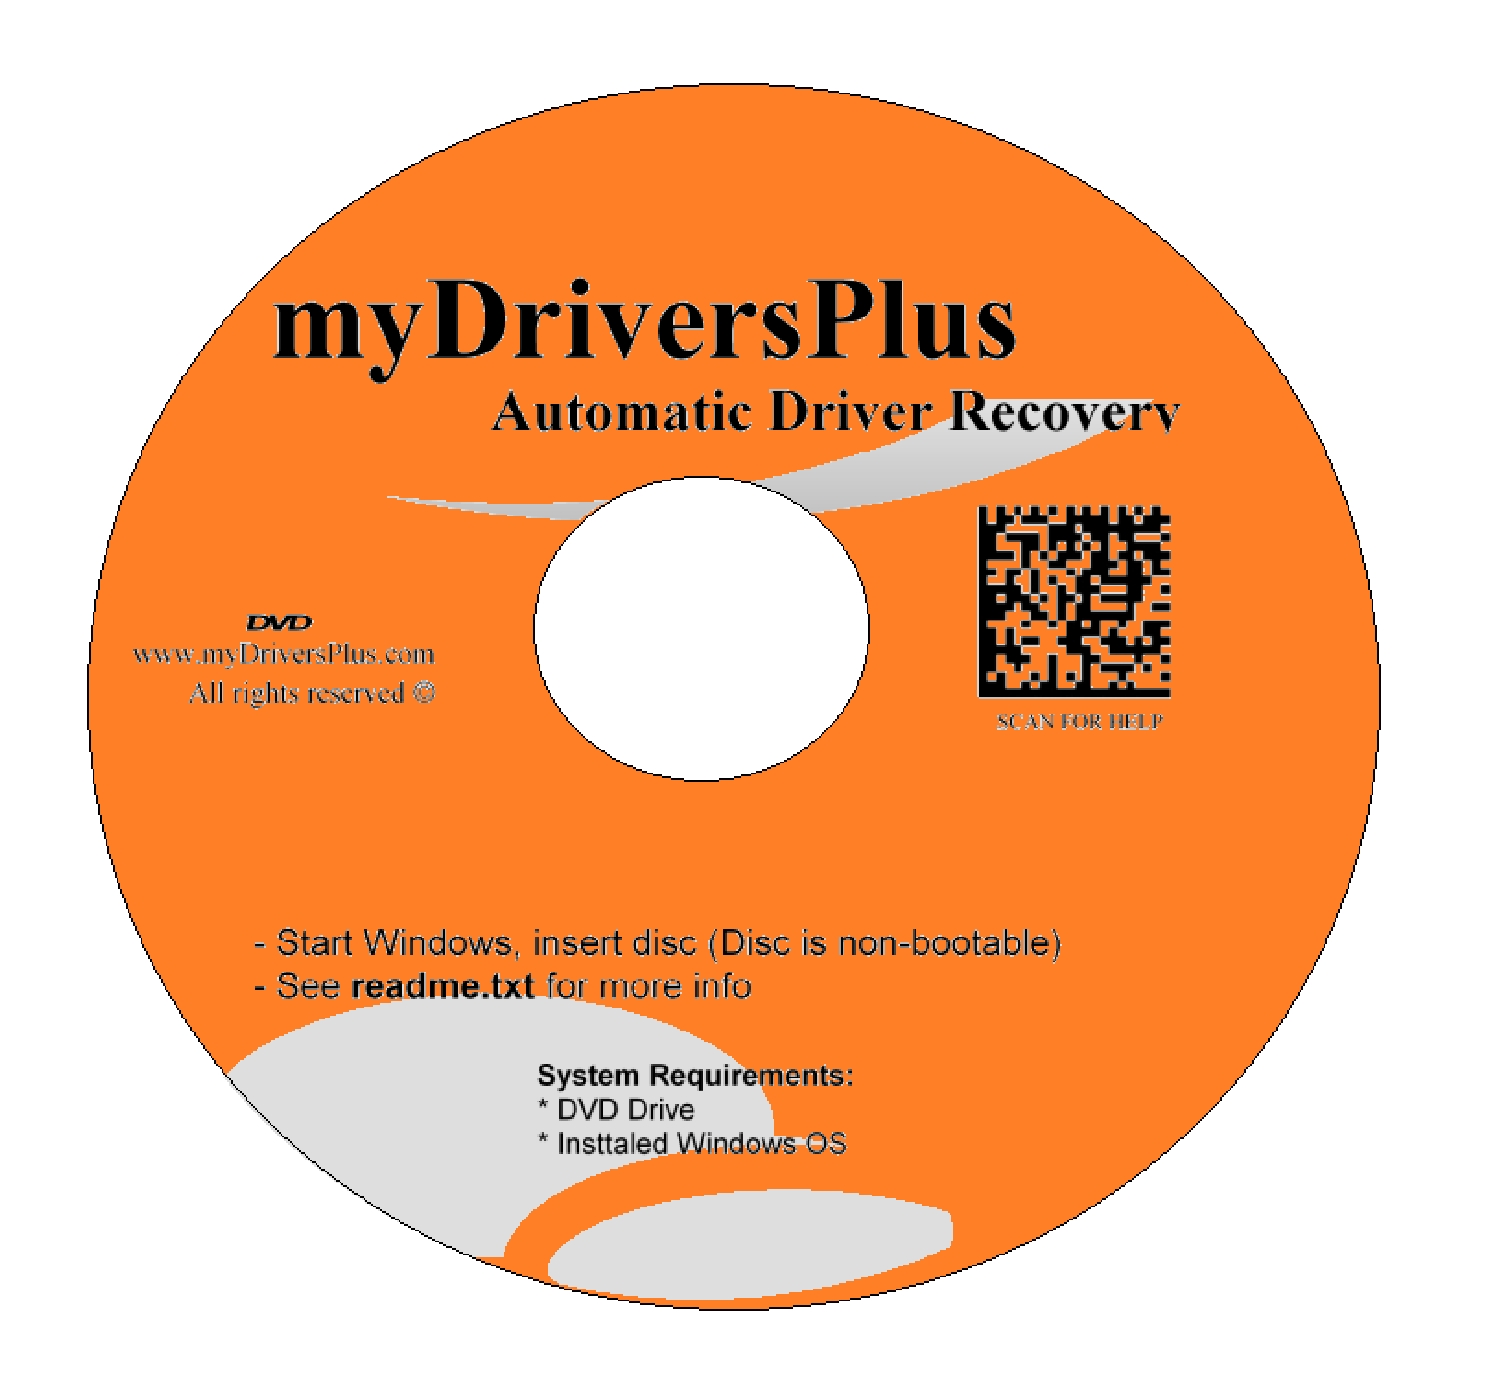 HP Pavilion 542x Drivers Recovery Restore Resource Utilities Software with Automatic One-Click Installer Unattended for Internet, Wi-Fi, Ethernet, Video, Sound, Audio, USB, Devices, Chipset ...(DVD R